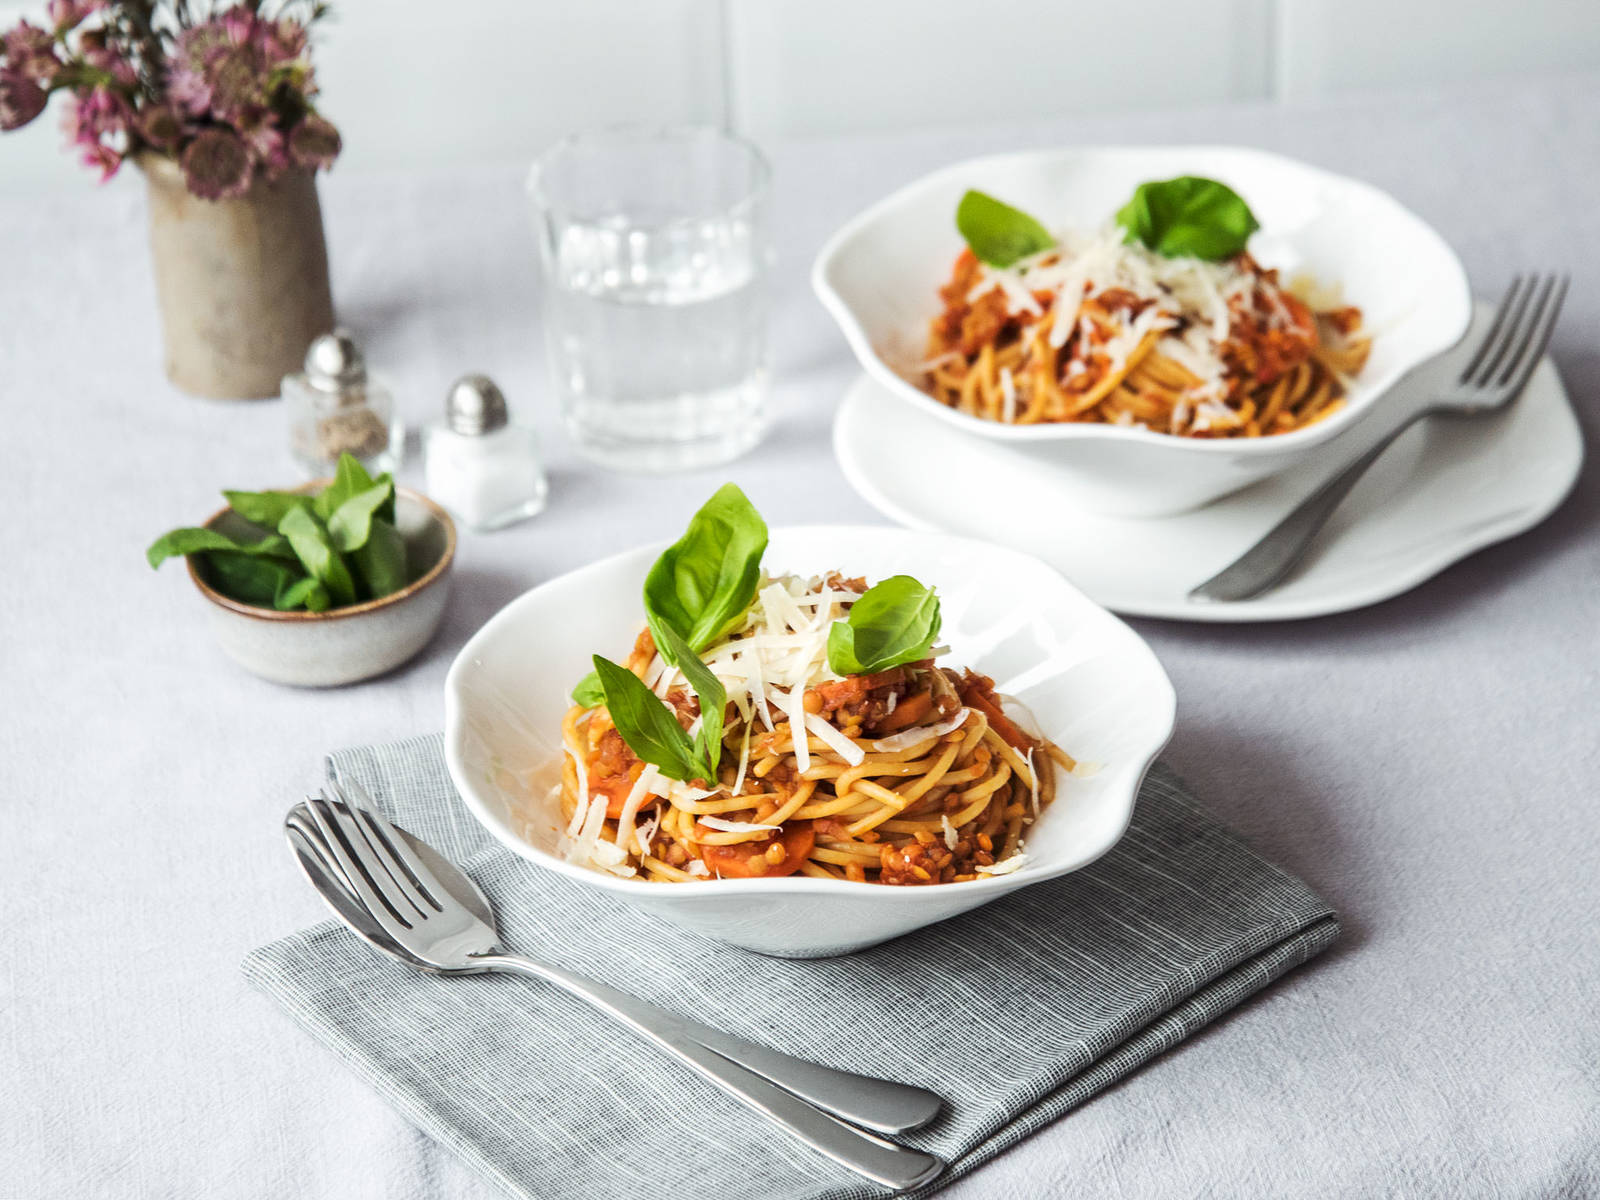 Spaghetti with lentil Bolognese